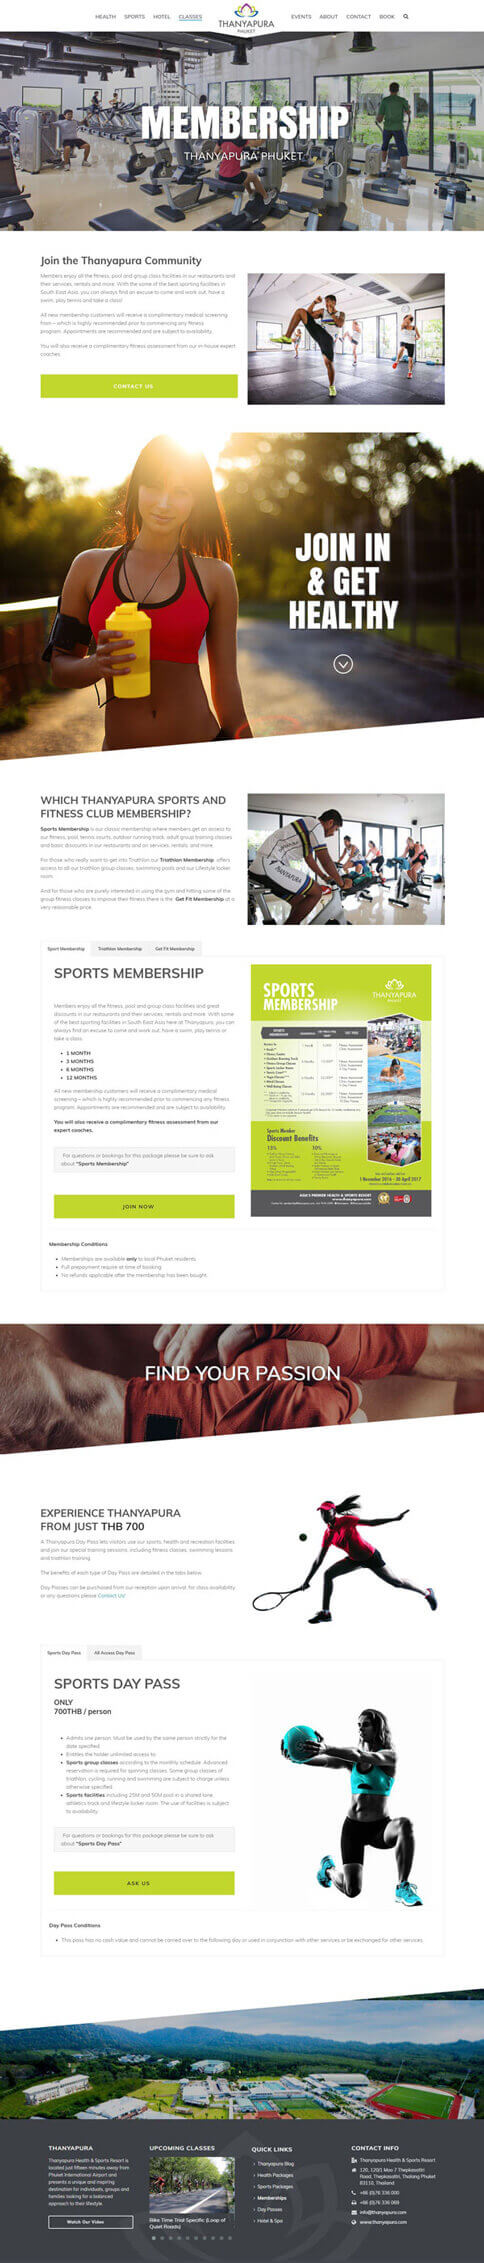 NEW Membership Page - Thanyapura Phuket Website Redesign